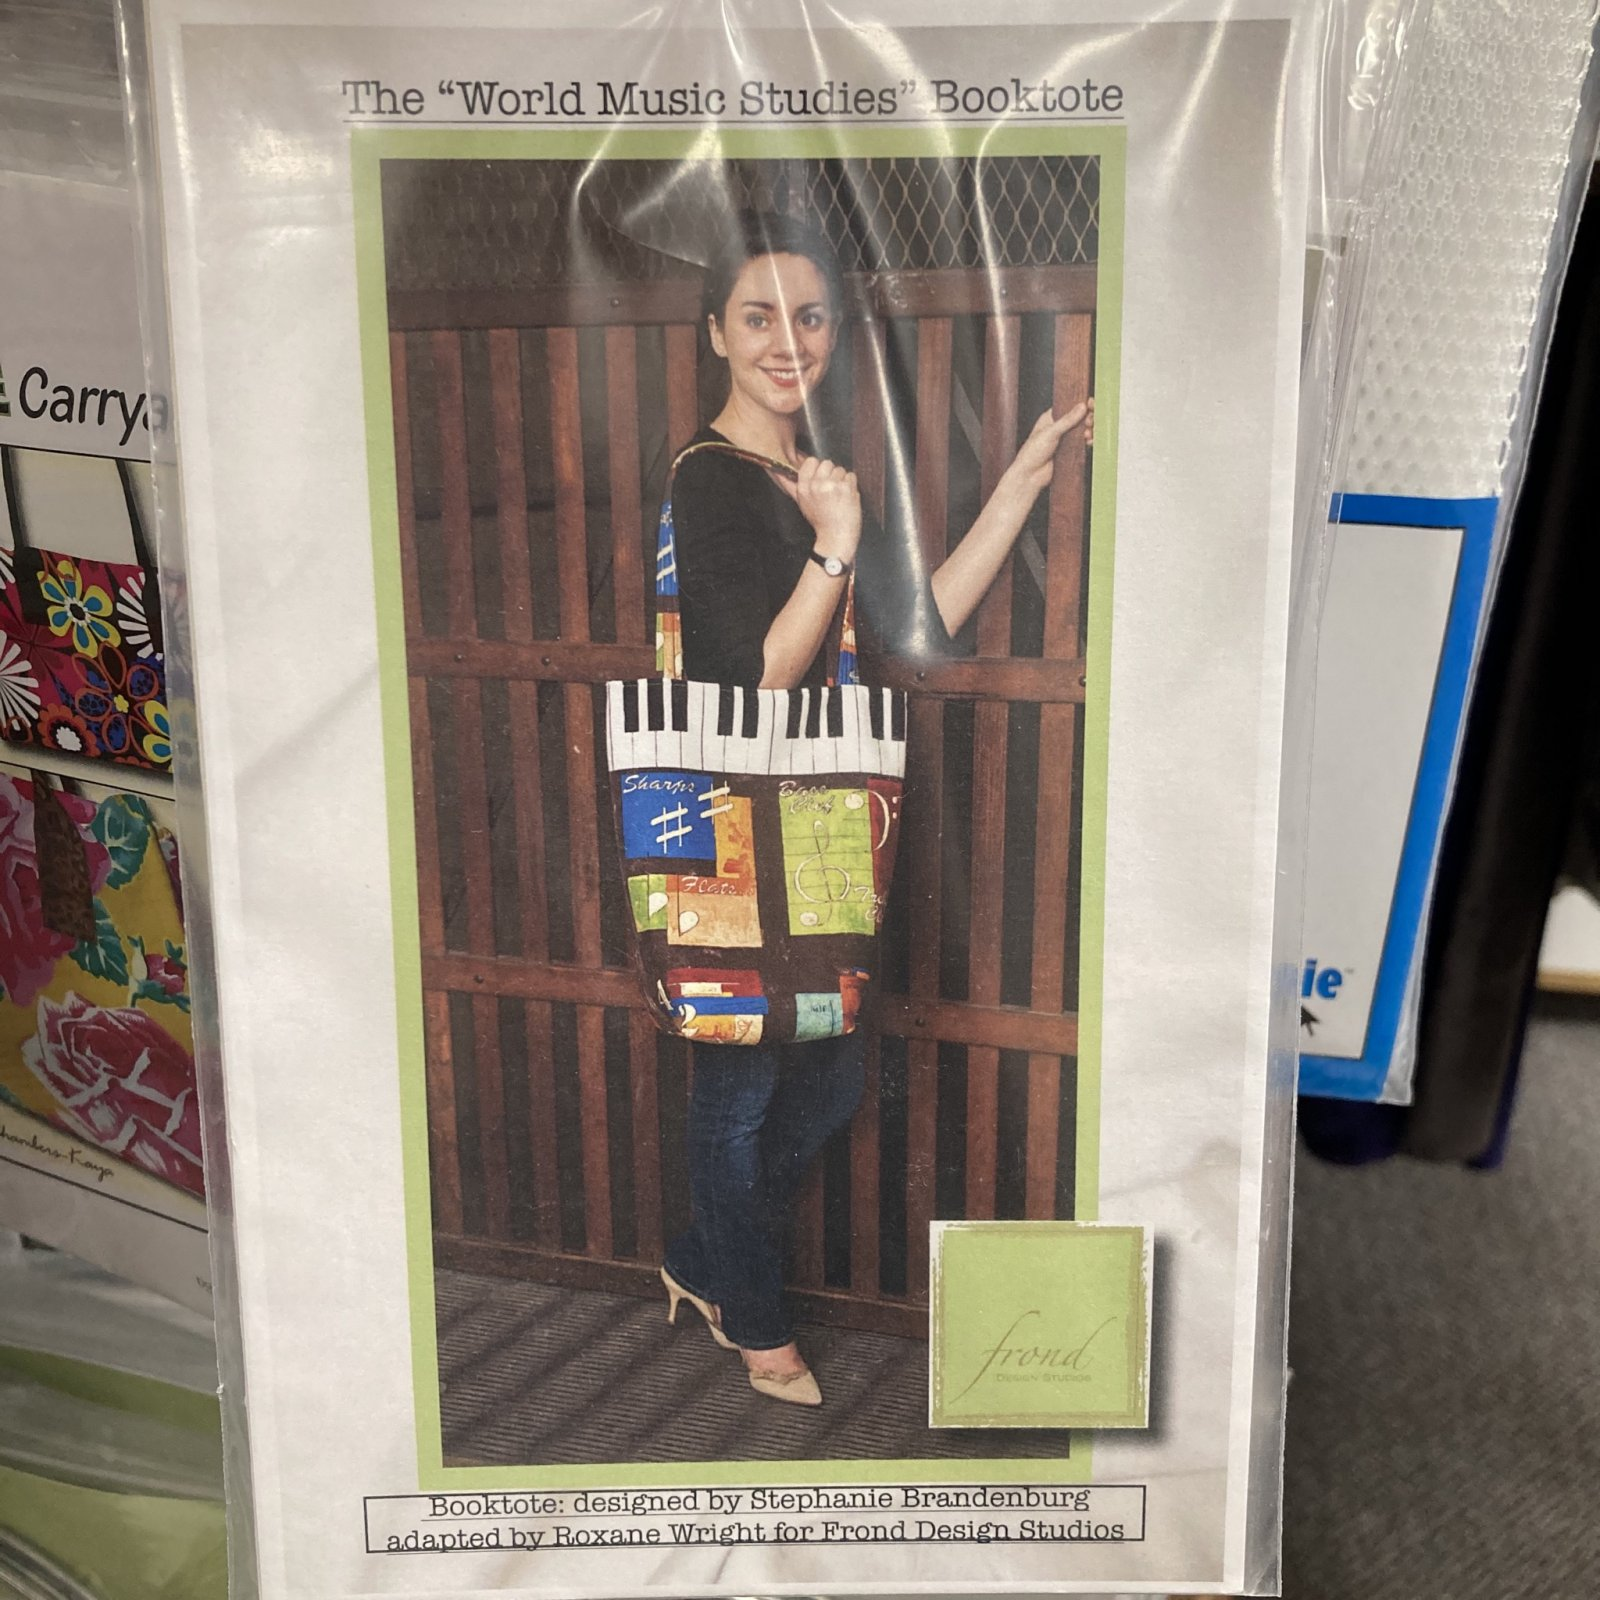 The World Music Studies Booktote